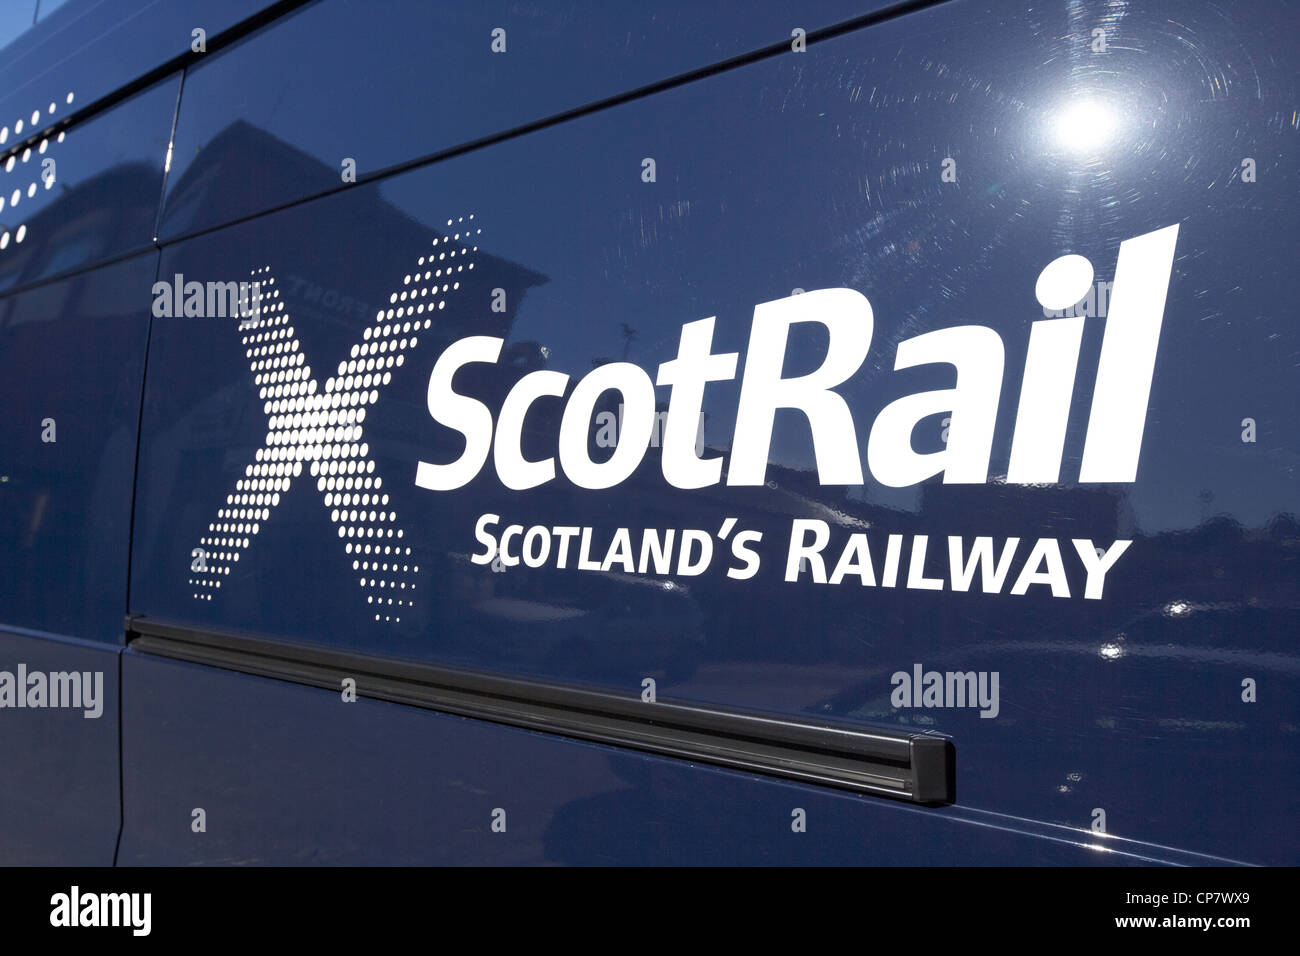 scotrail logo scotlands railways on a vehicle Scotland UK - Stock Image